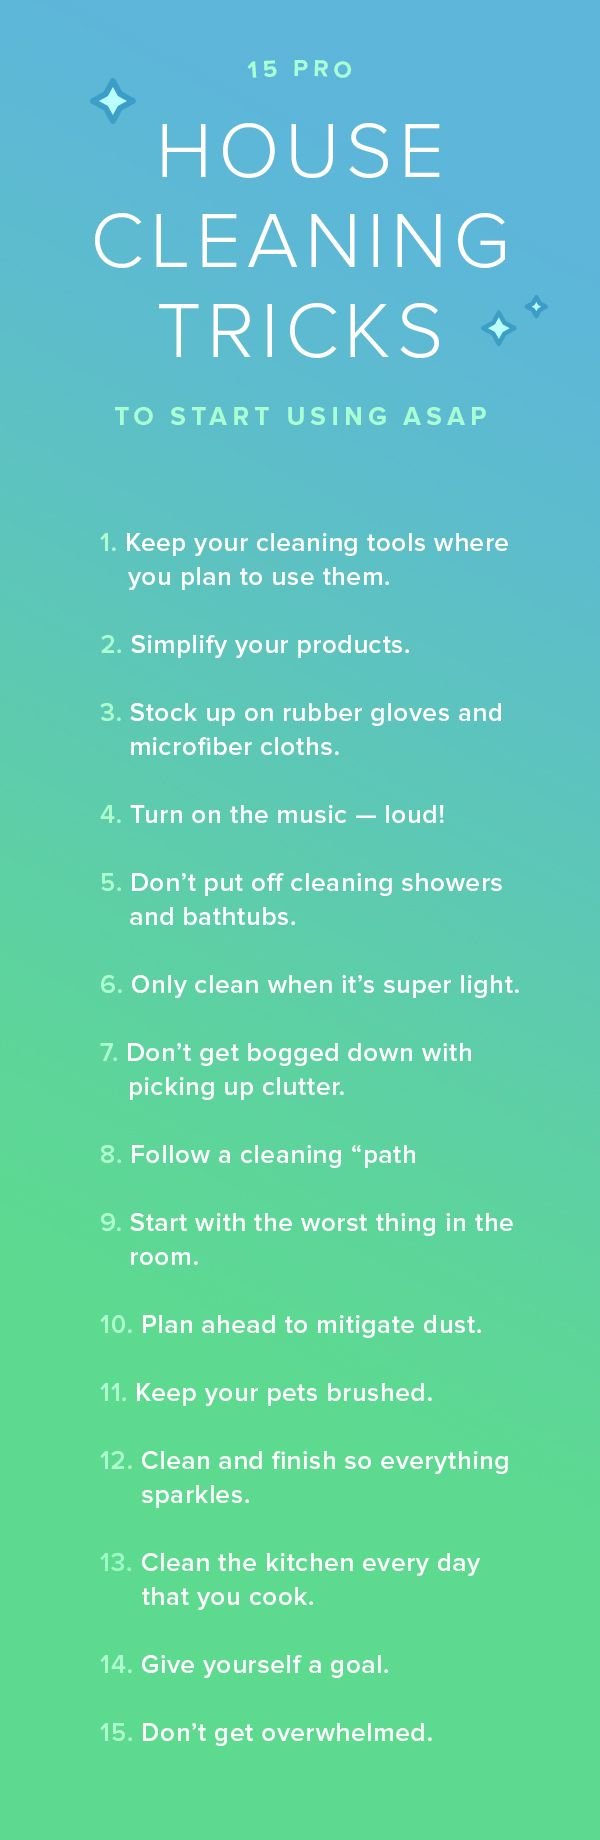 275 best CLEANING images on Pinterest | Cleaning hacks, Cleaning ...